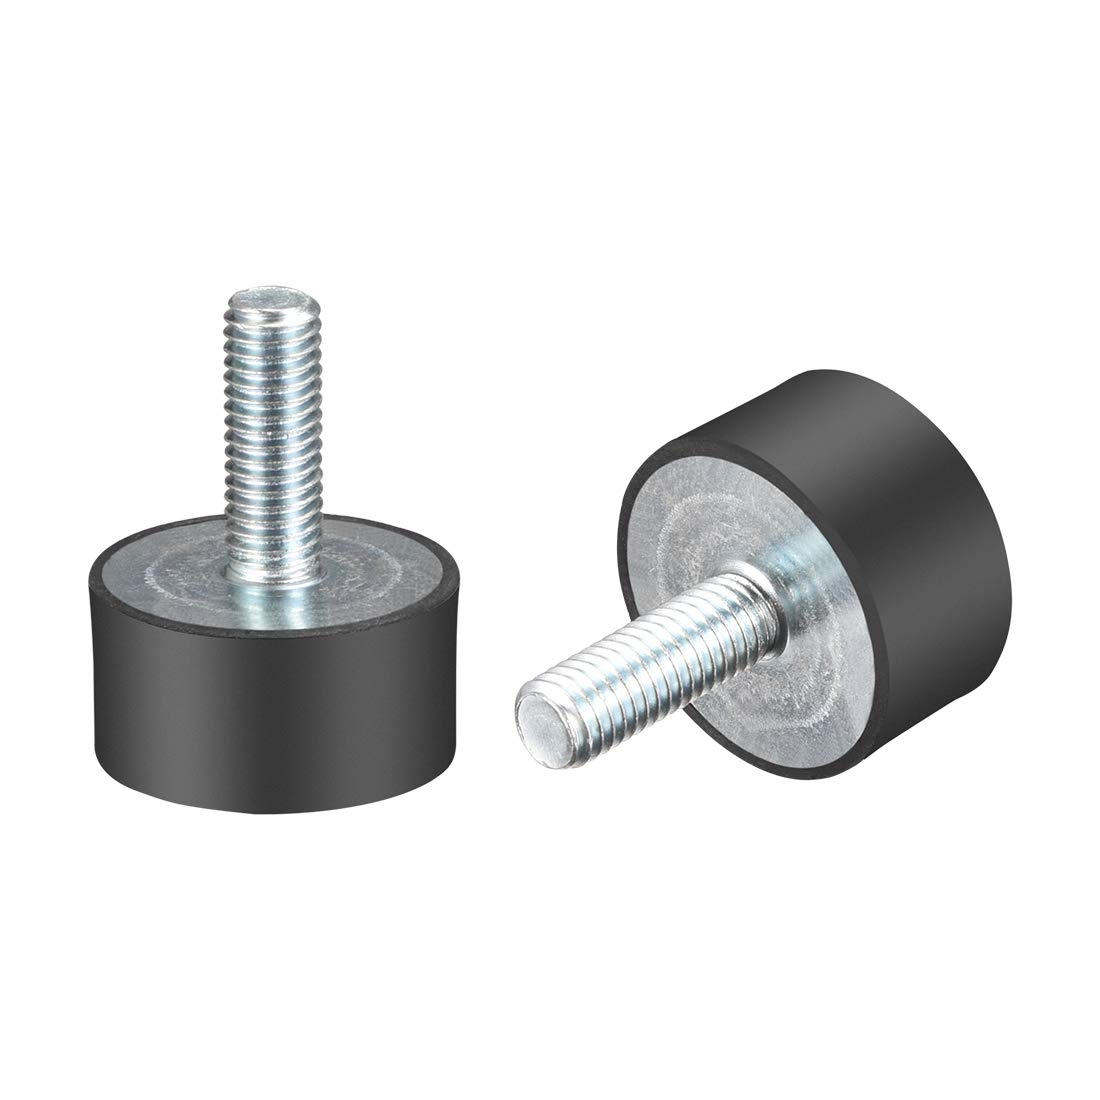 uxcell M8 Thread Rubber Mounts,Vibration Isolators,Cylindrical Shock Absorber with Studs 30mm x 15mm 2pcs